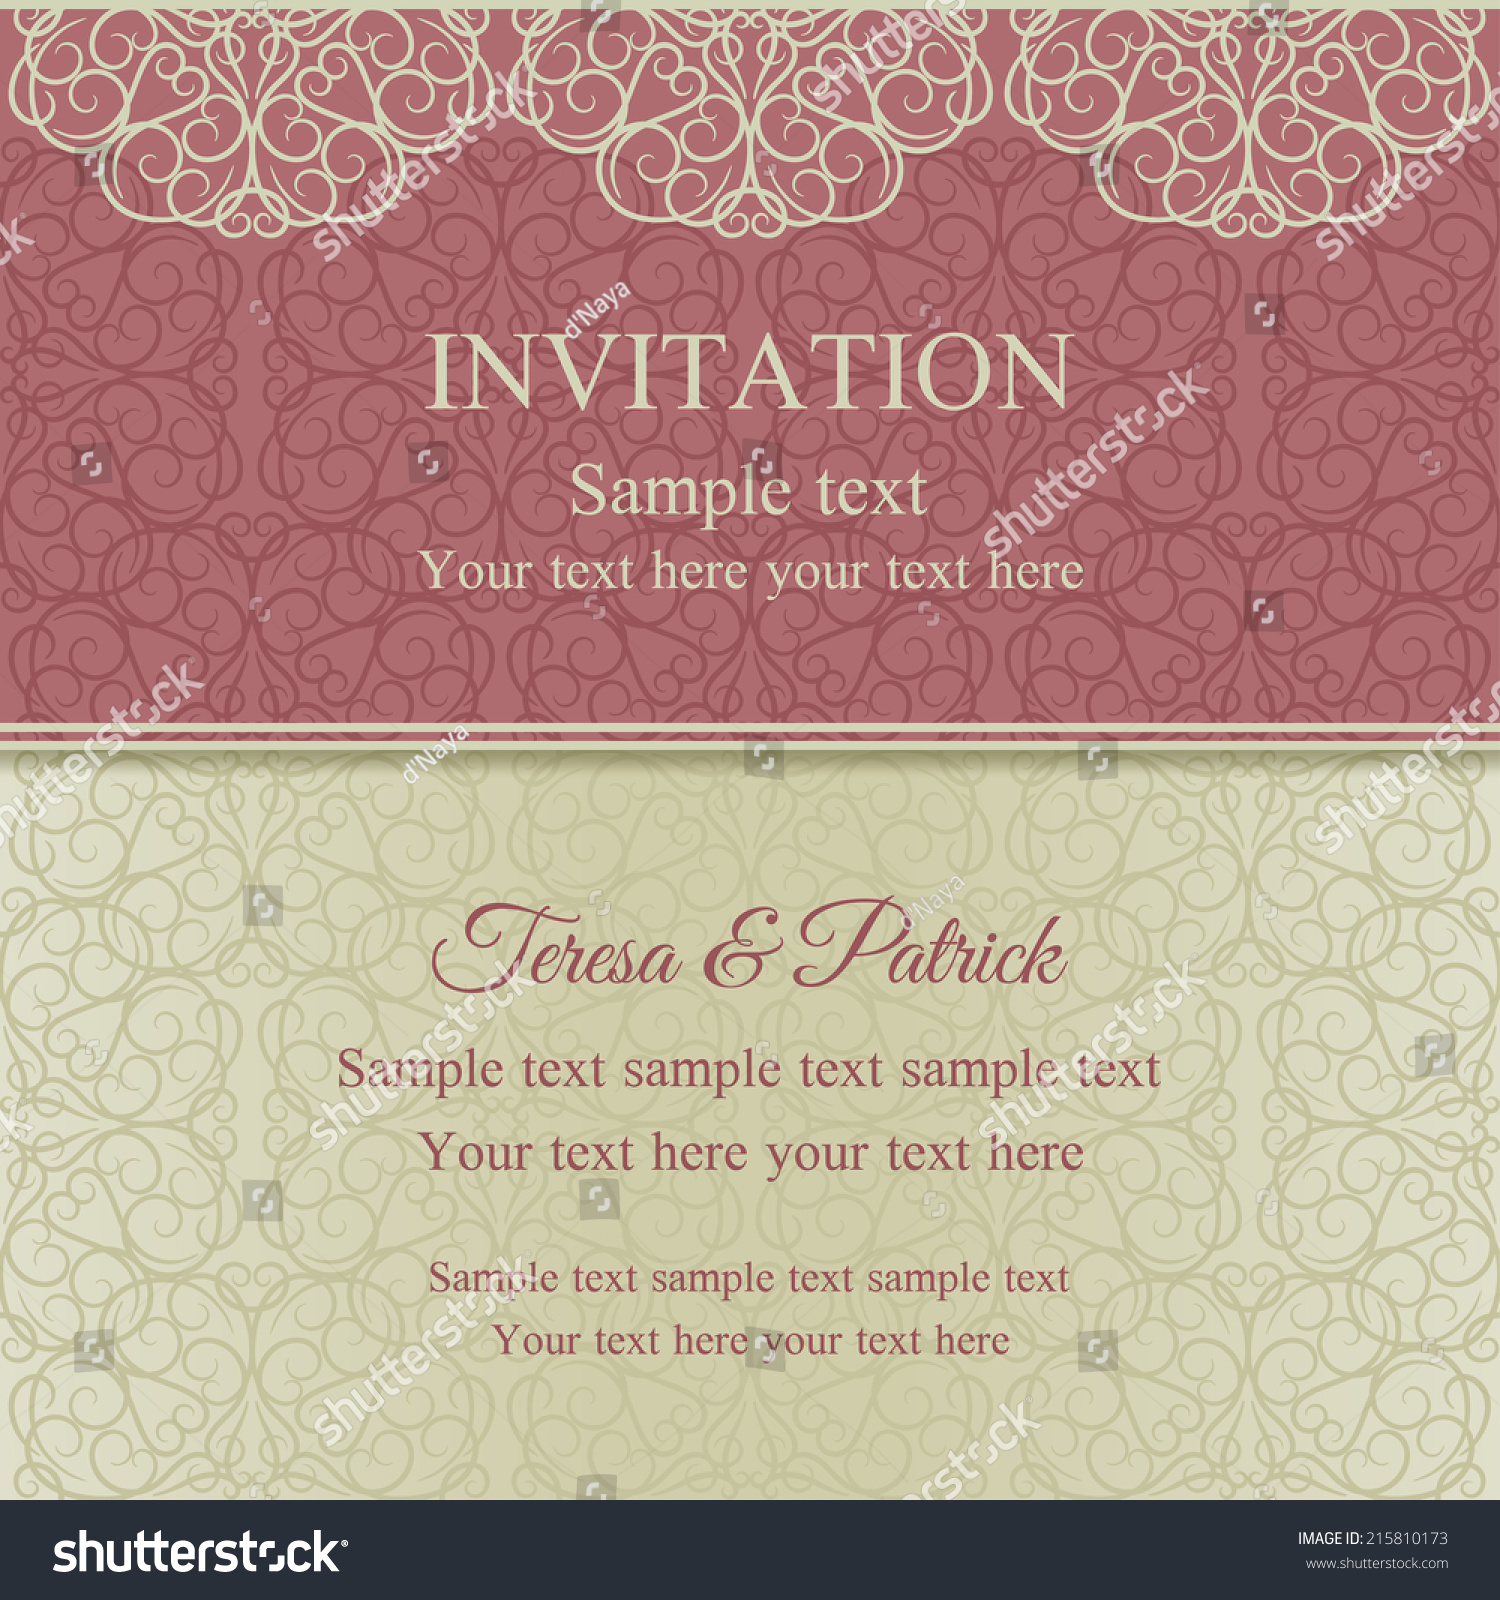 Baroque Invitation Card Oldfashioned Style Pink Stock Vector ...